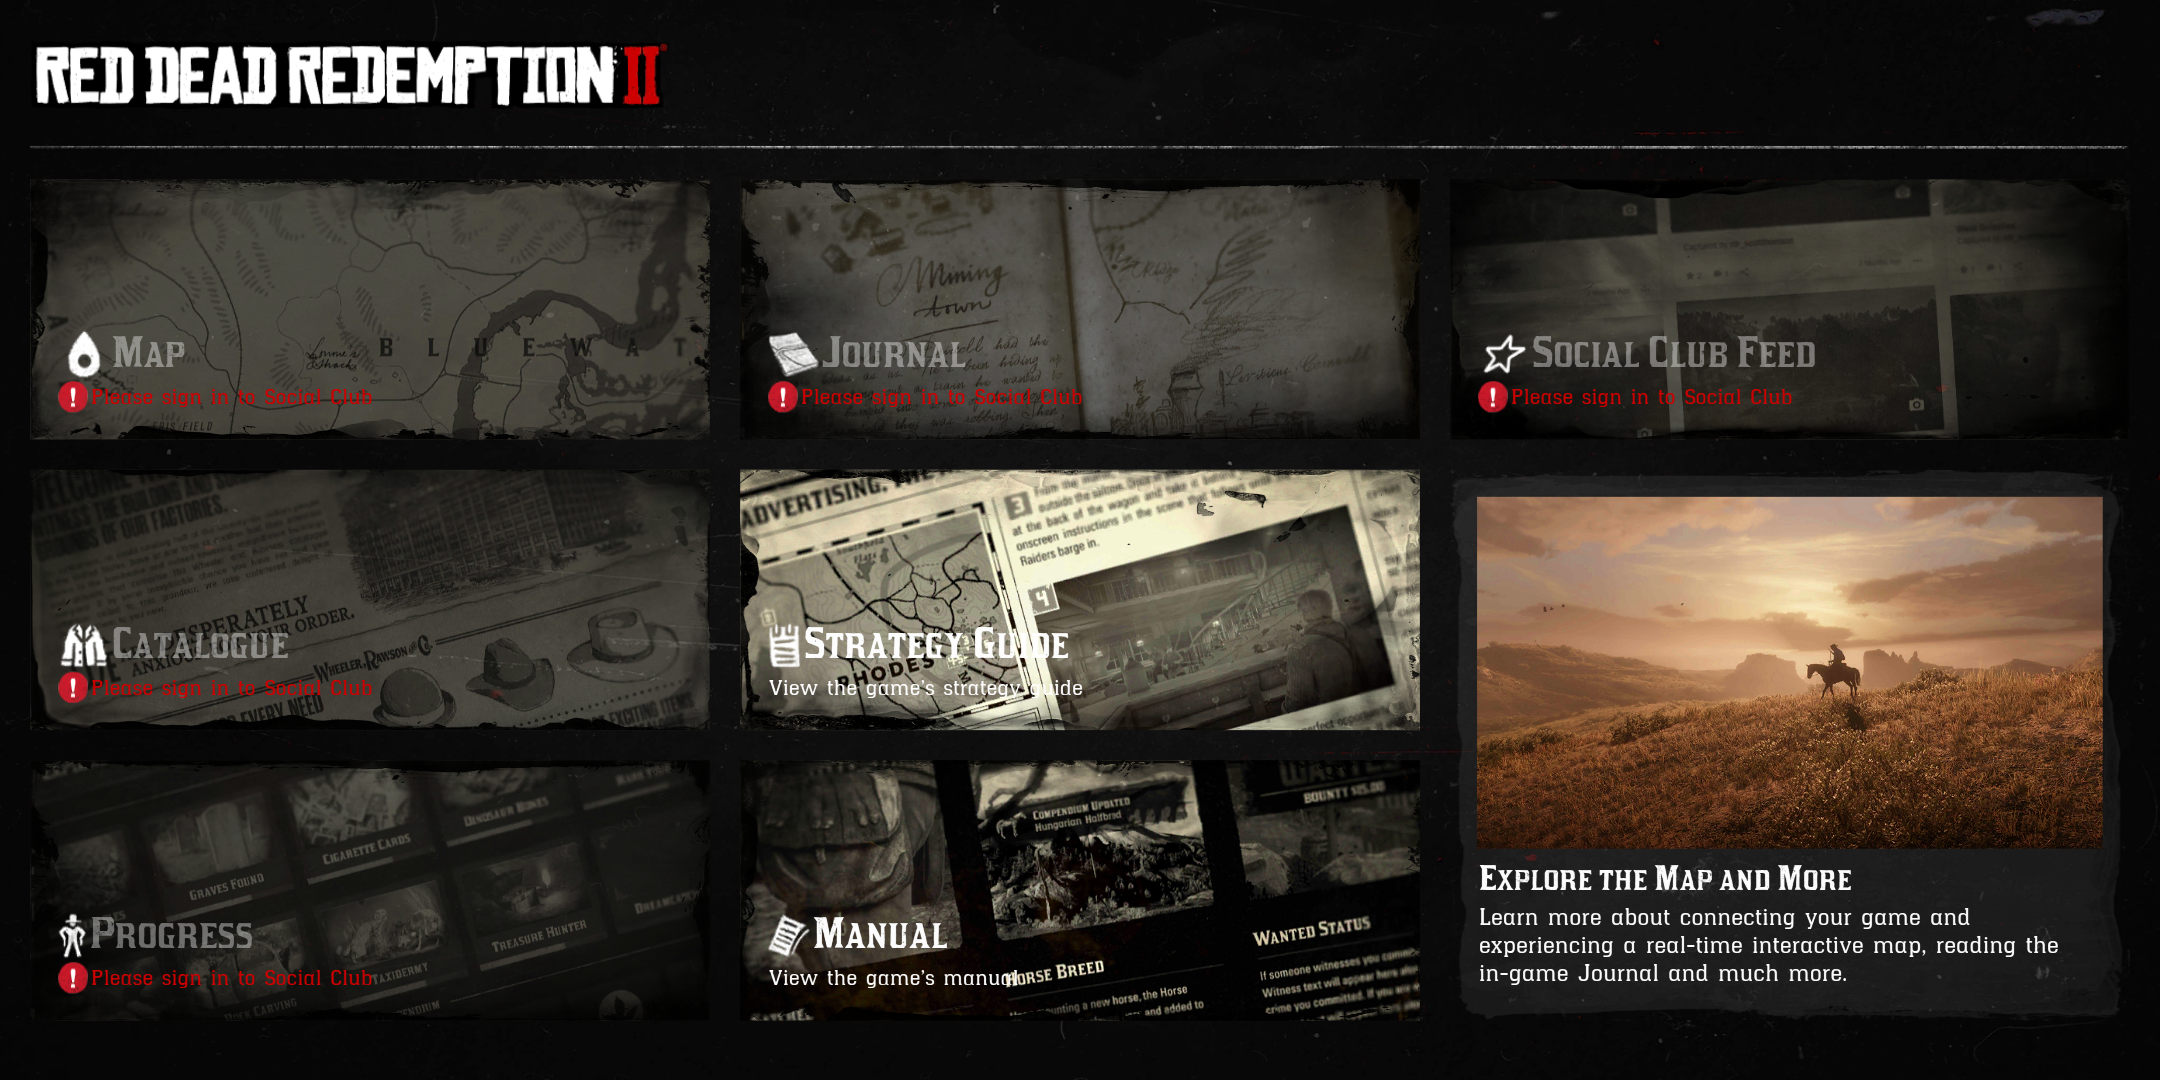 red dead redemption 2 guide digital download